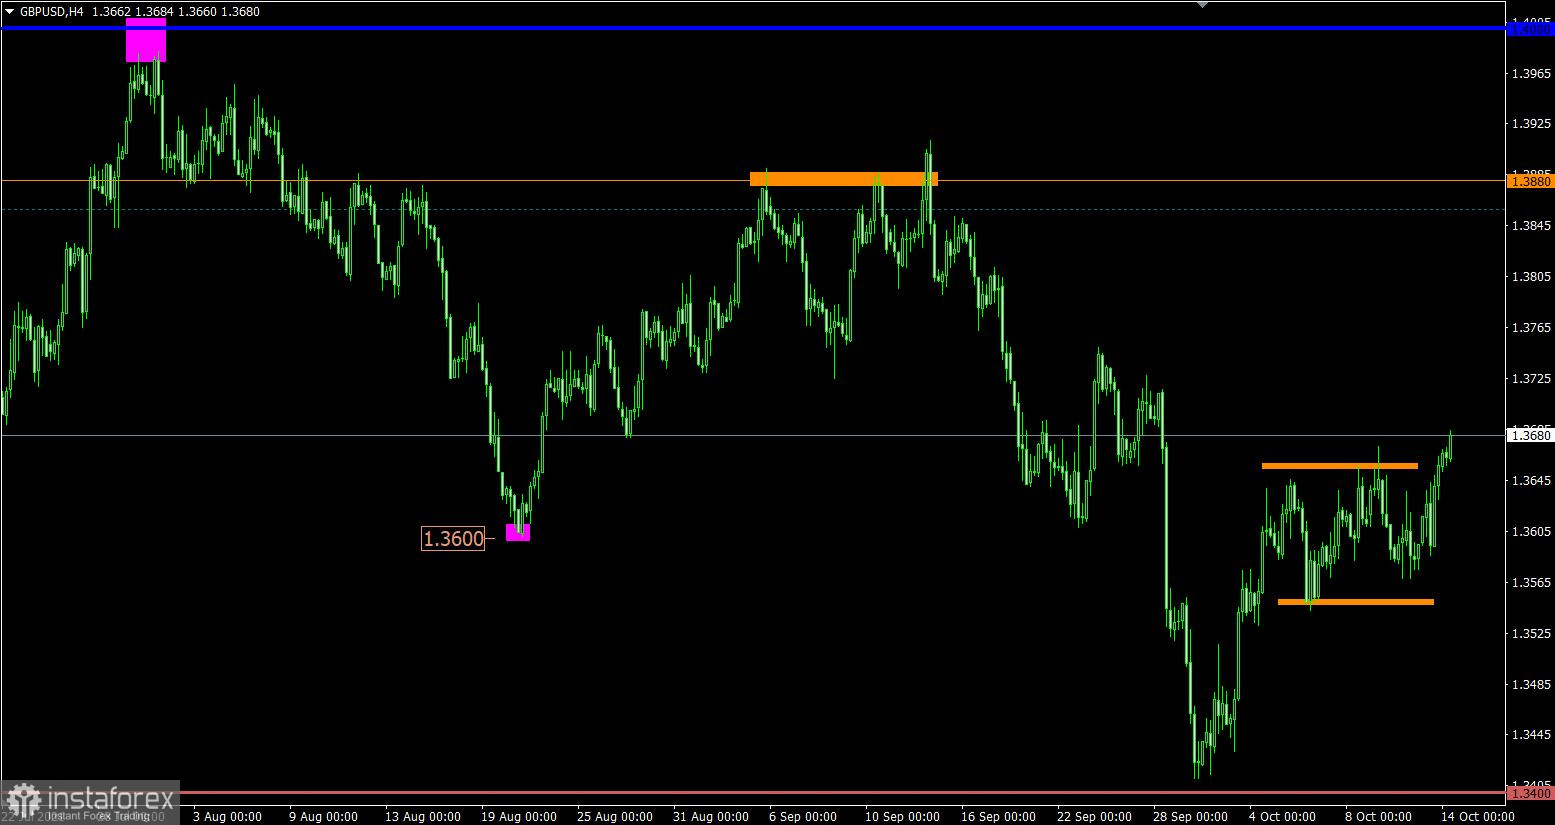 Trading plan for EUR/USD and GBP/USD on October 14, 2021